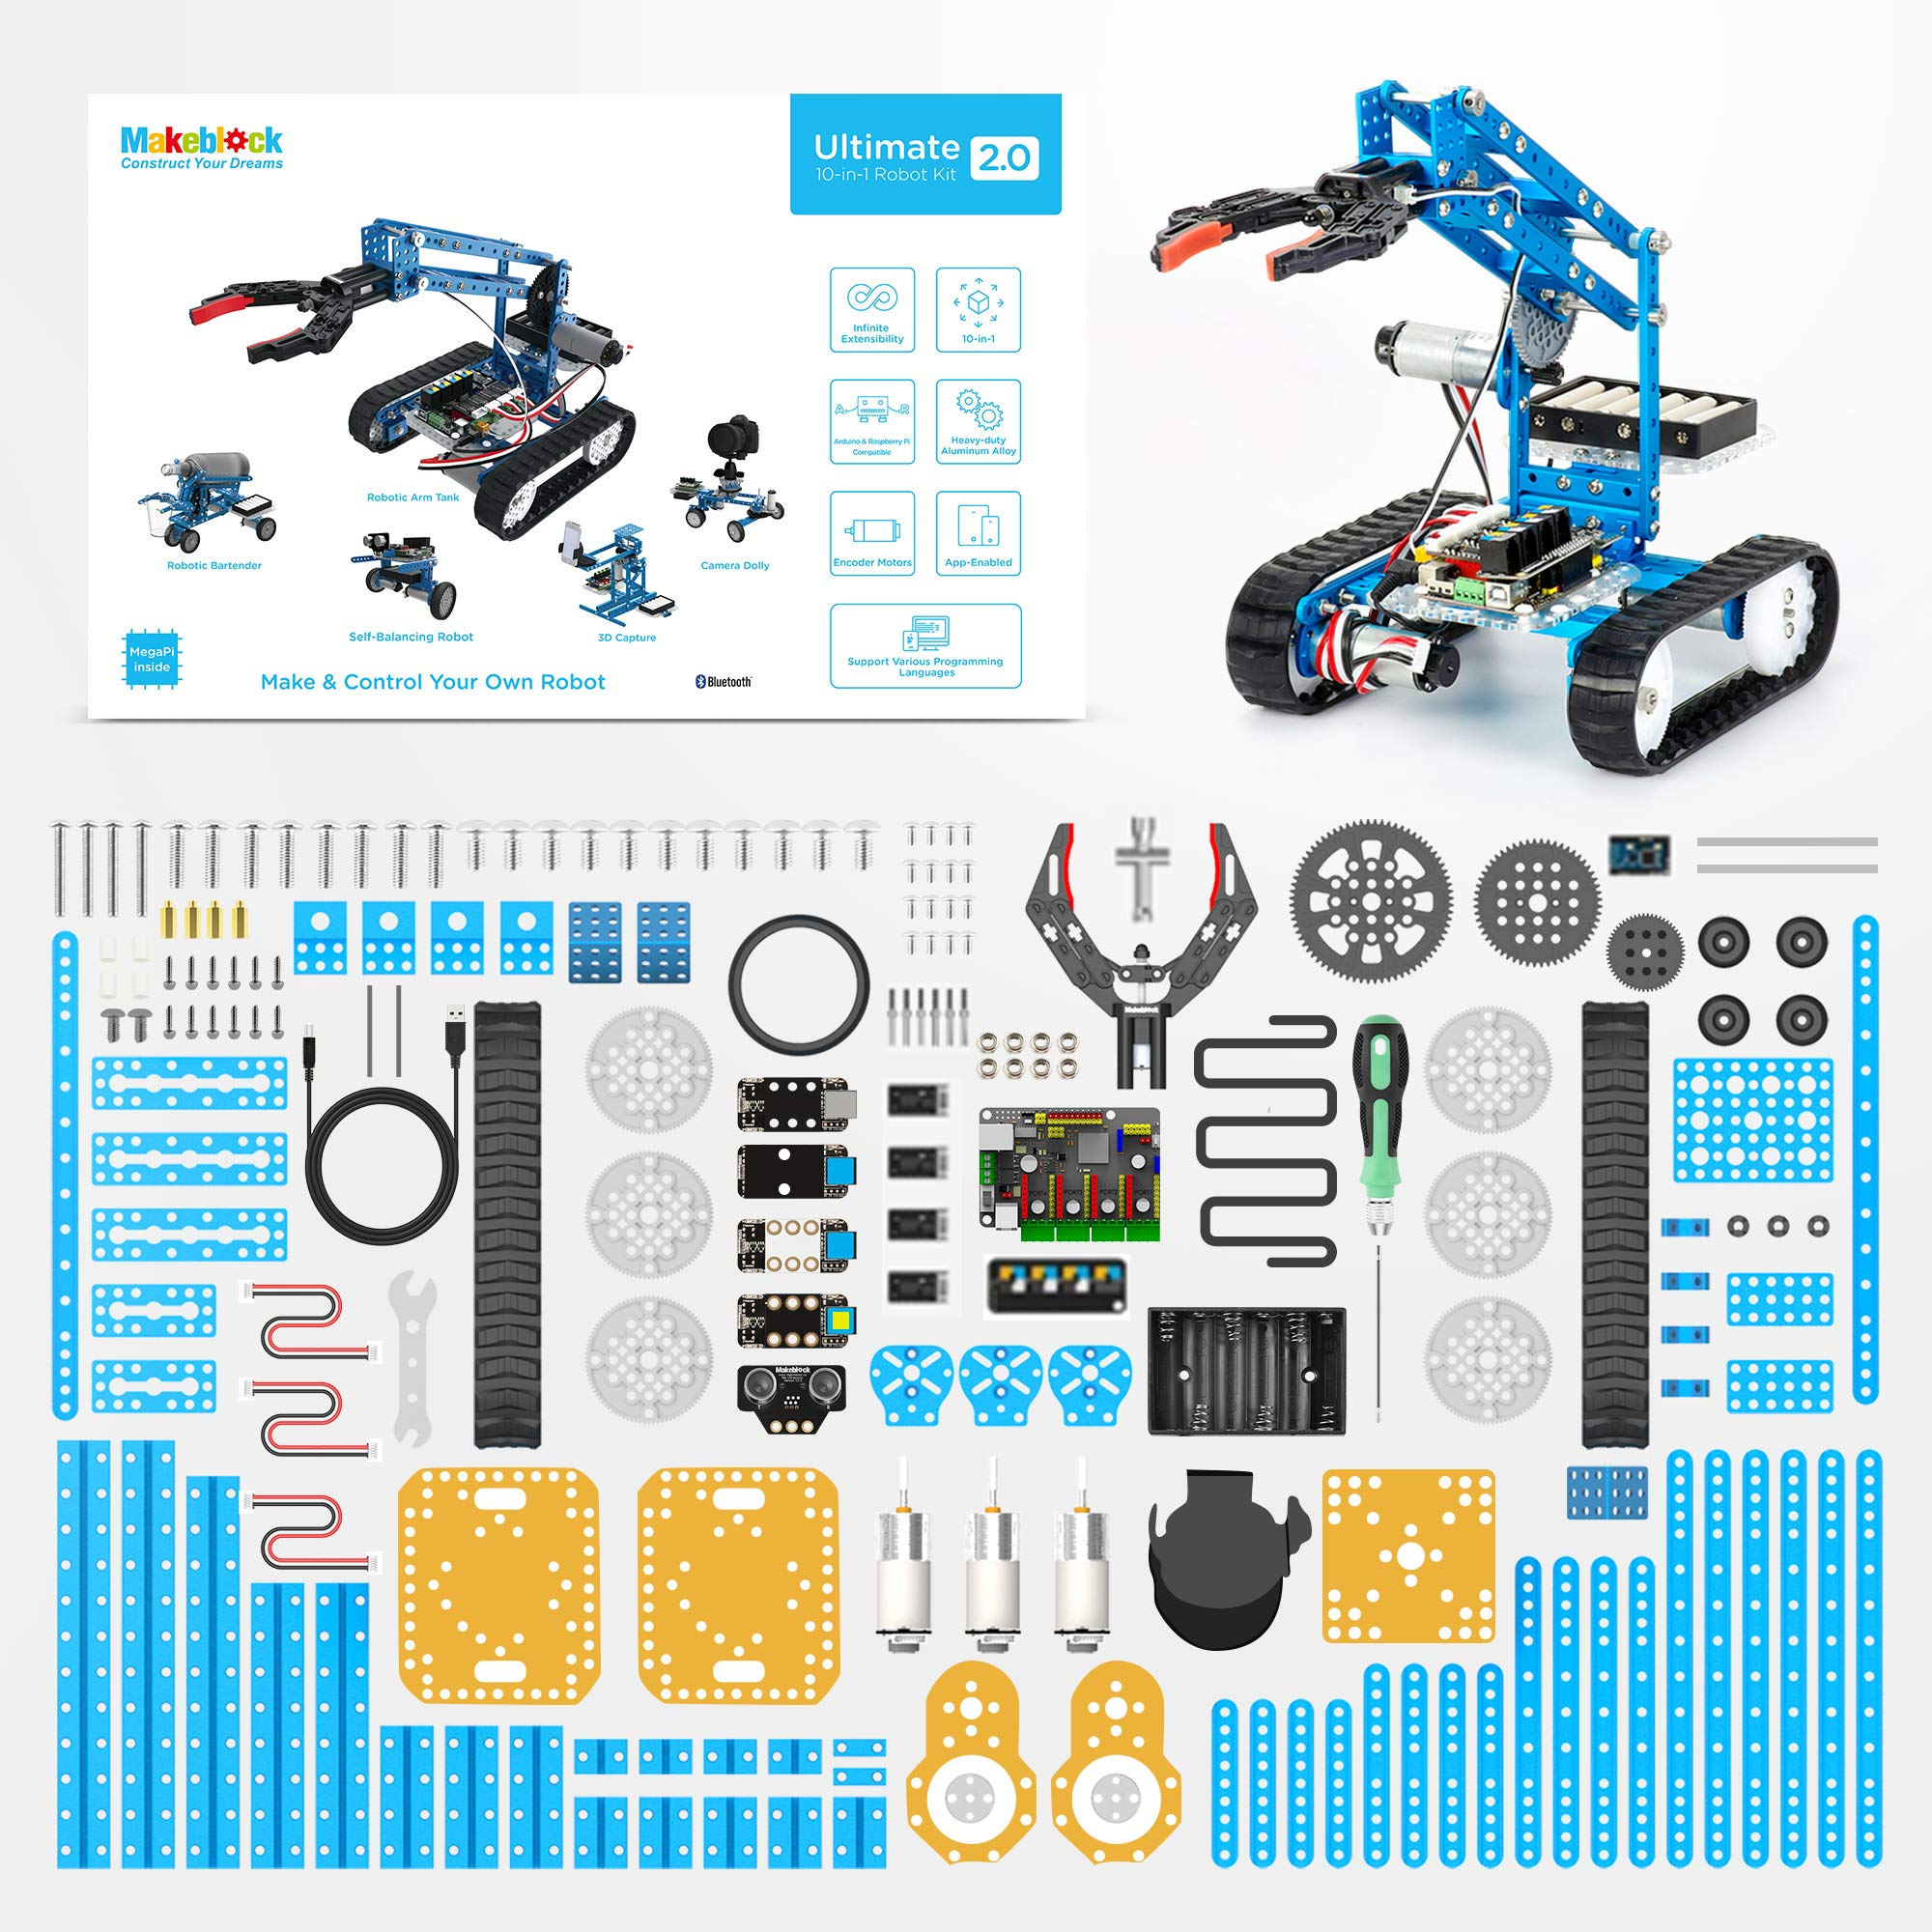 Makeblock DIY Ultimate Robot Kit - Premium Quality - 10-in-1 Robot - STEM Education - Arduino - Scratch 2.0 - Programmable Robot Kit for Kids to Learn Coding, Robotics and Electronics by Makeblock (Image #8)